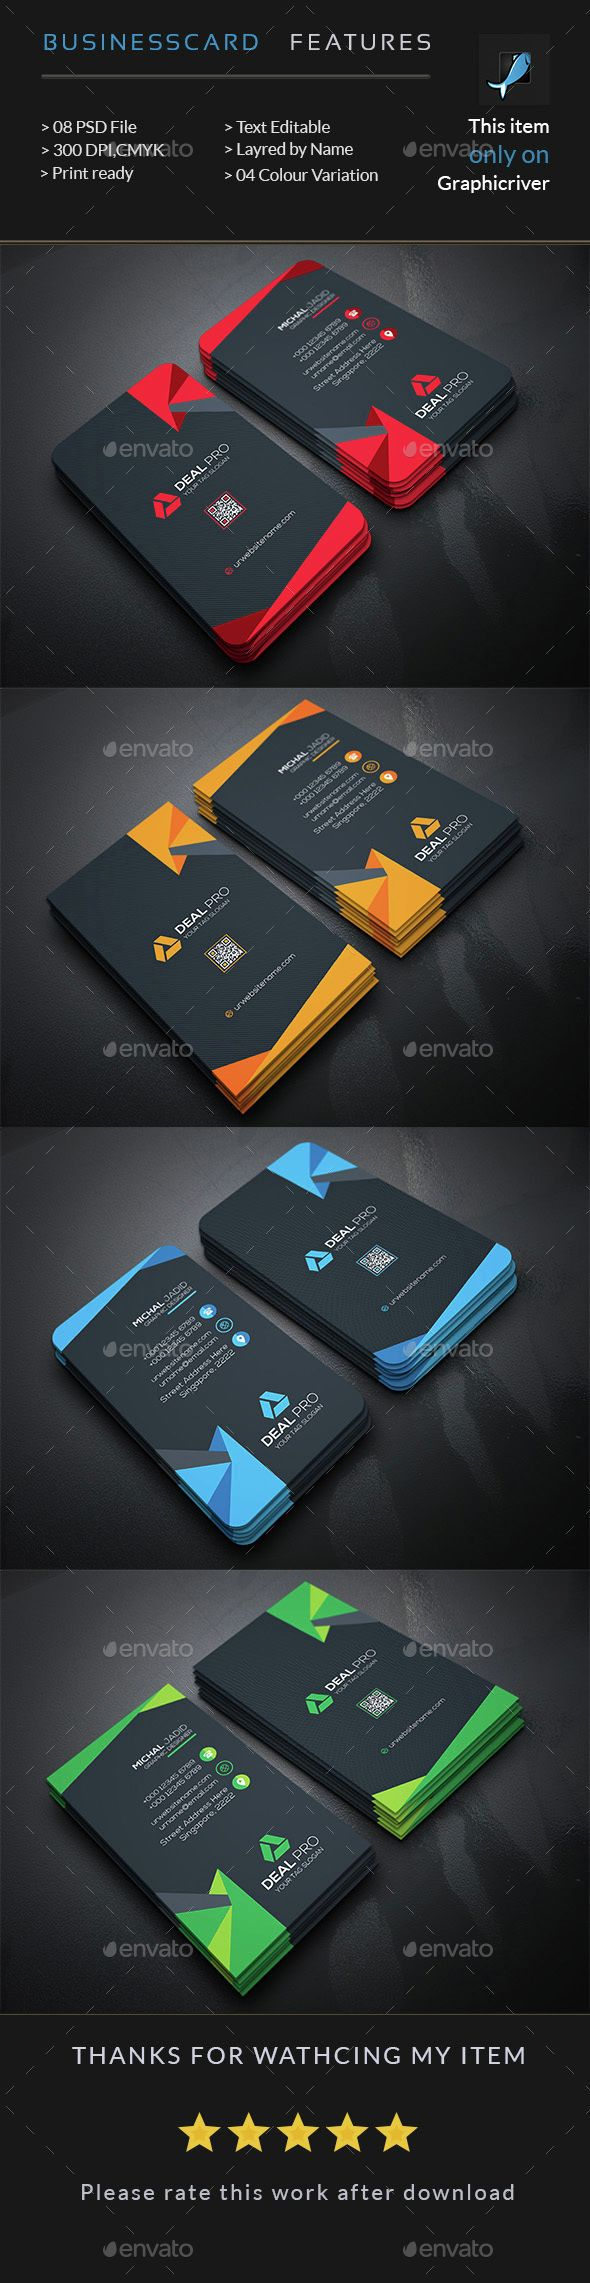 92 Best Business Card Images On Pinterest Business Card Design